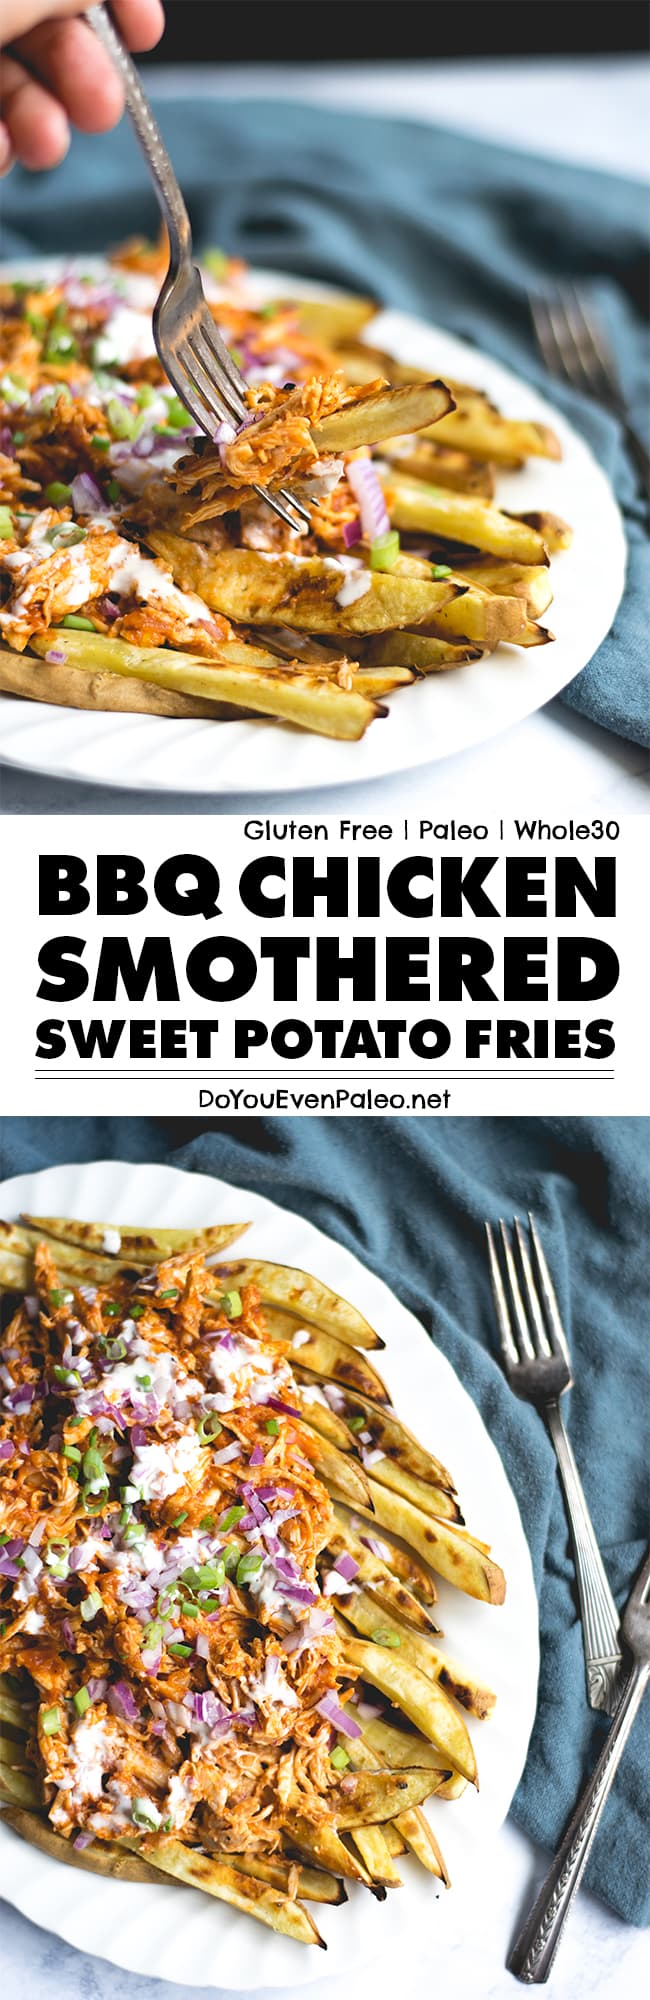 BBQ Chicken Smothered Sweet Potato Fries Recipes Pin | DoYouEvenPaleo.net